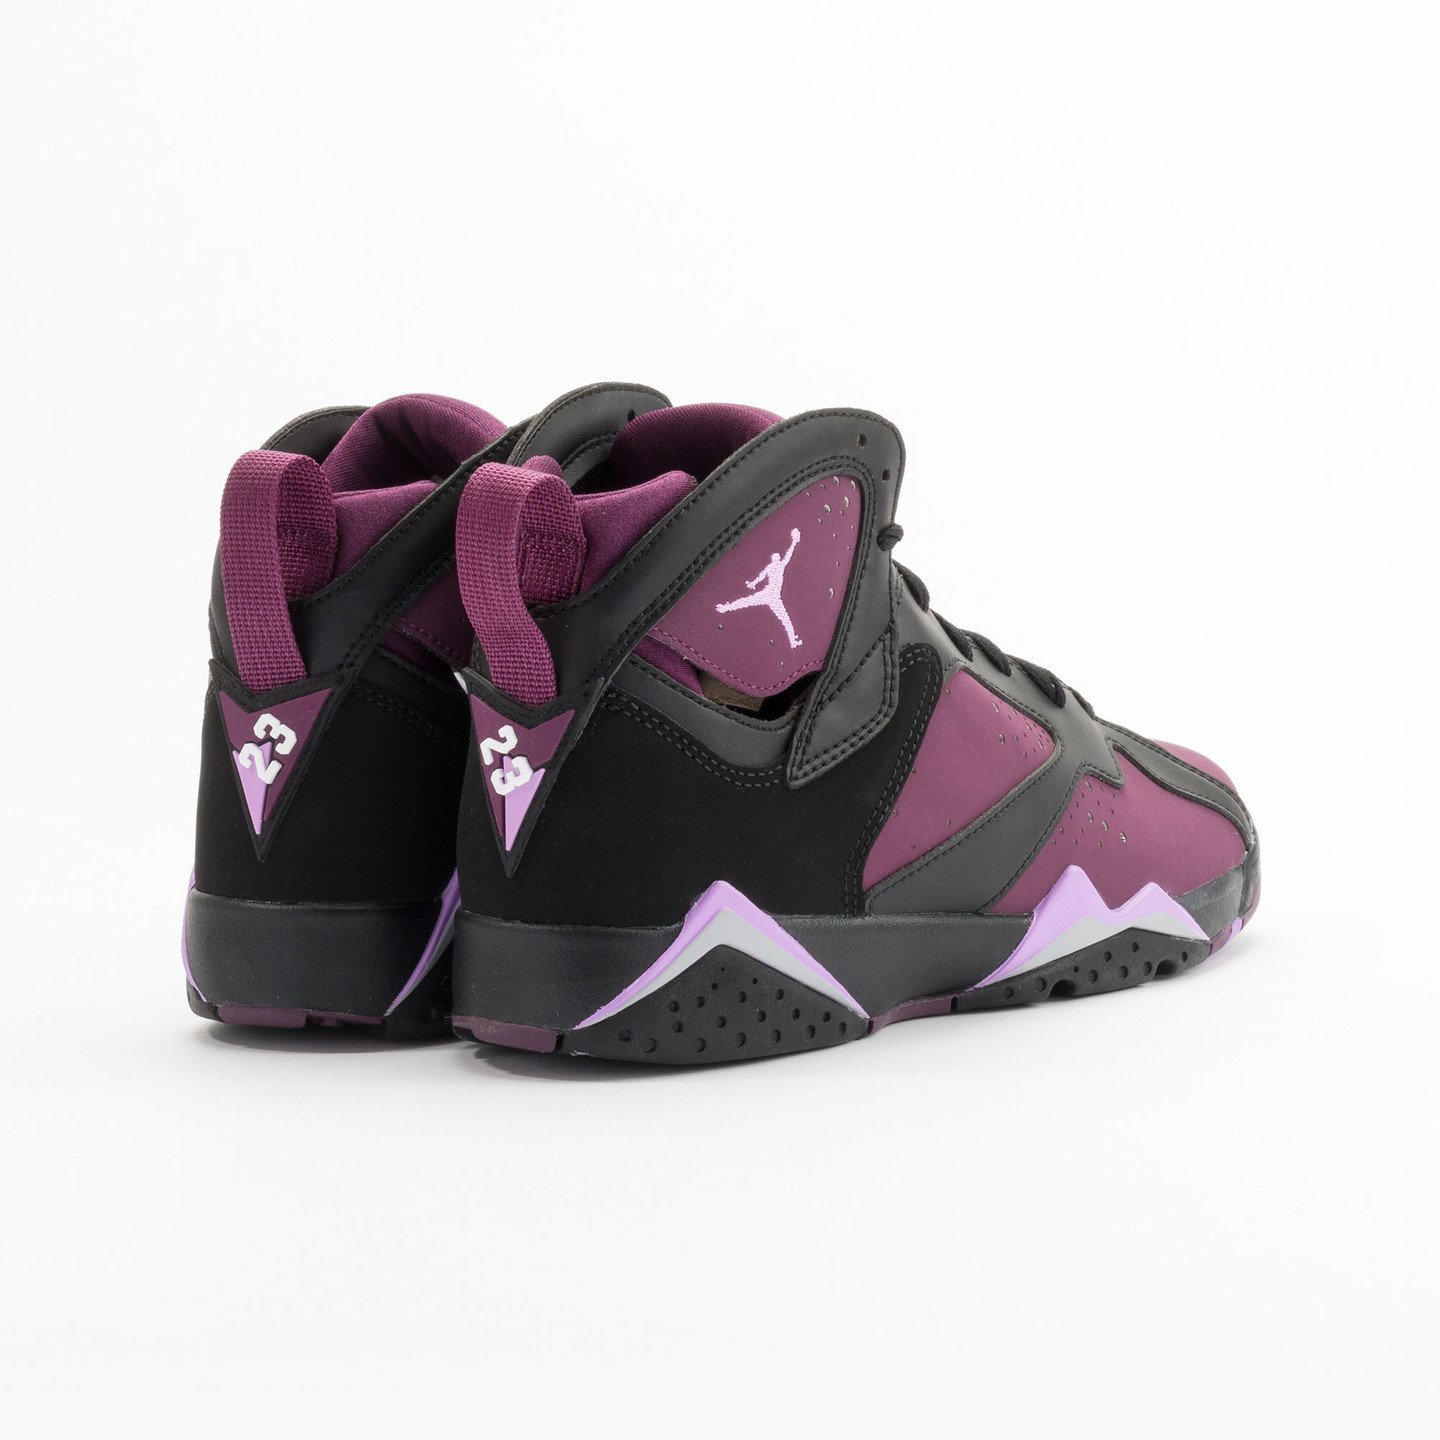 Jordan Air Jordan 7 Retro GG Mulberry / Fuchsia / Black 442960-009-39